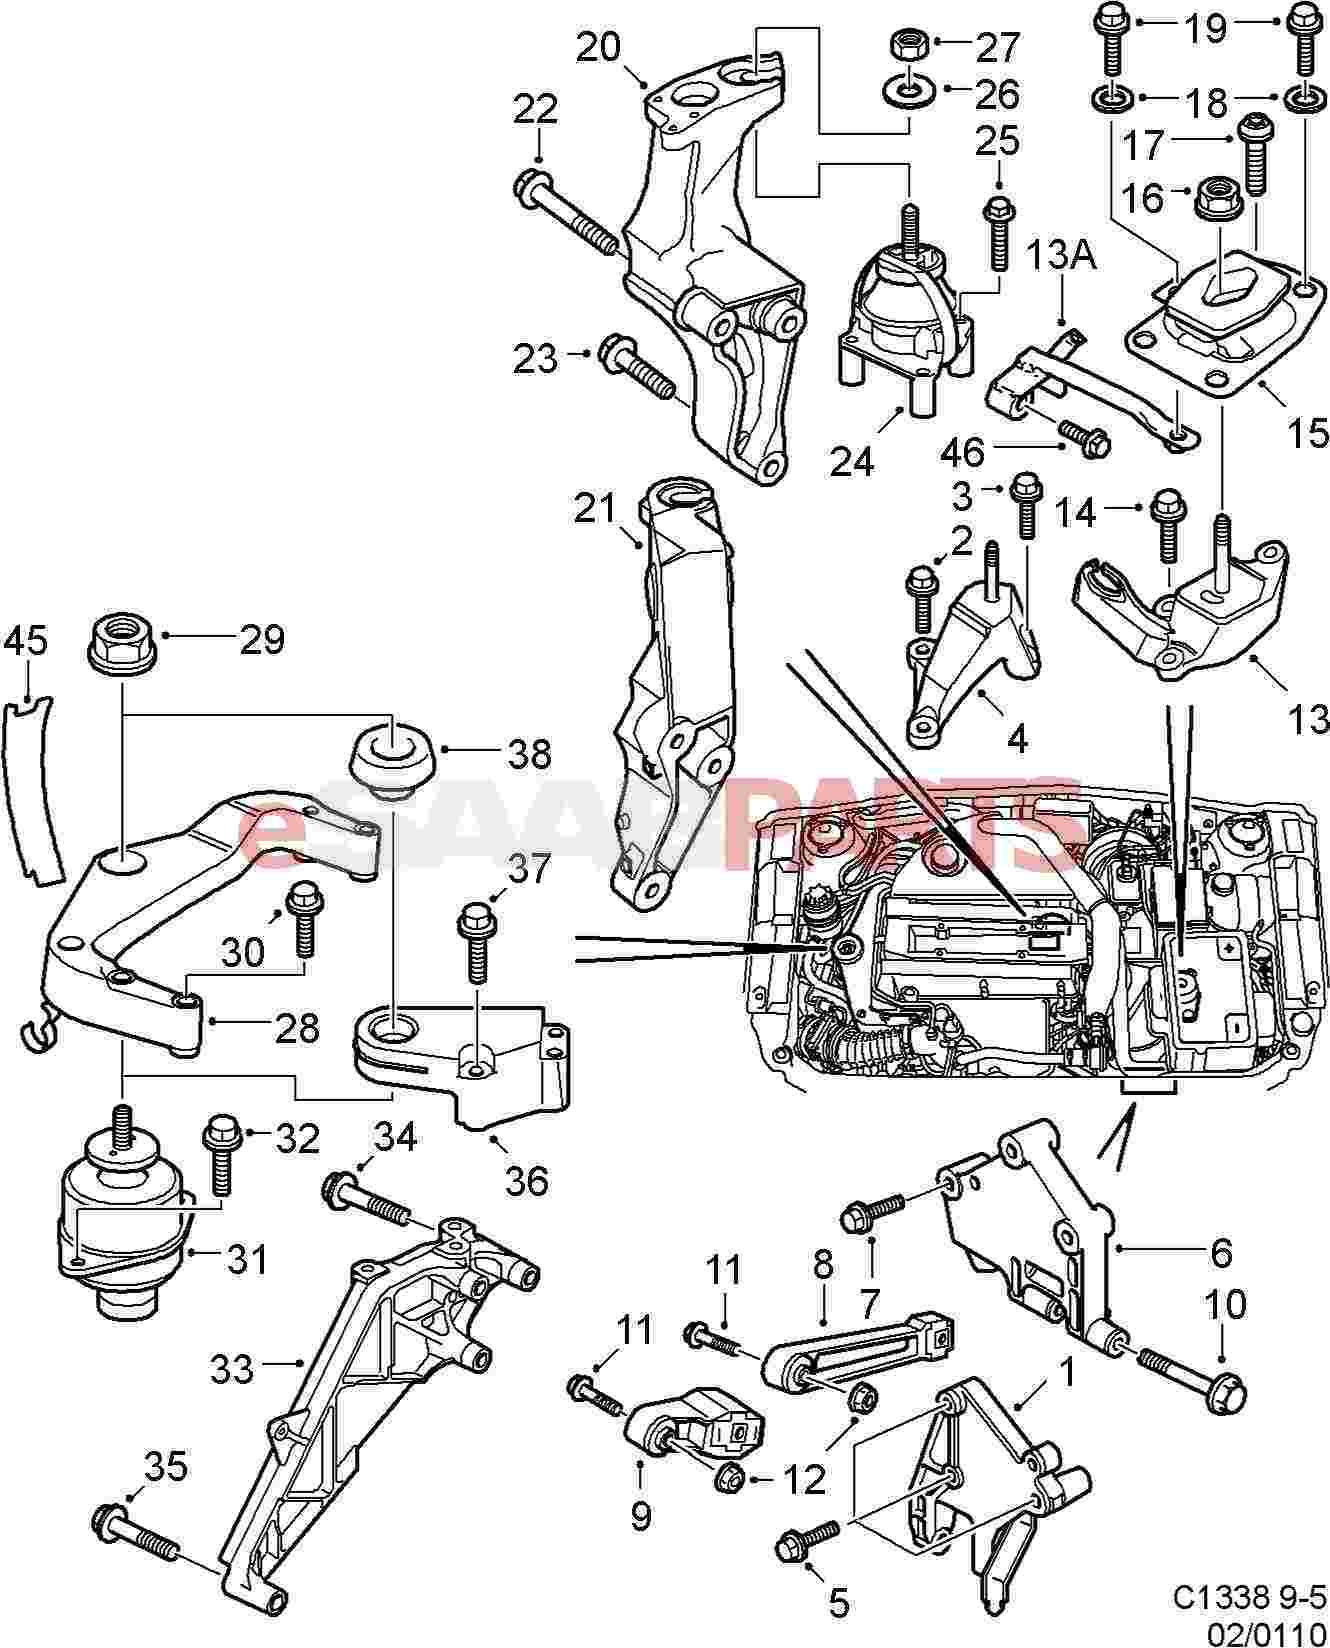 5063268 saab engine bracket genuine saab parts from esaabparts com diagram image 4